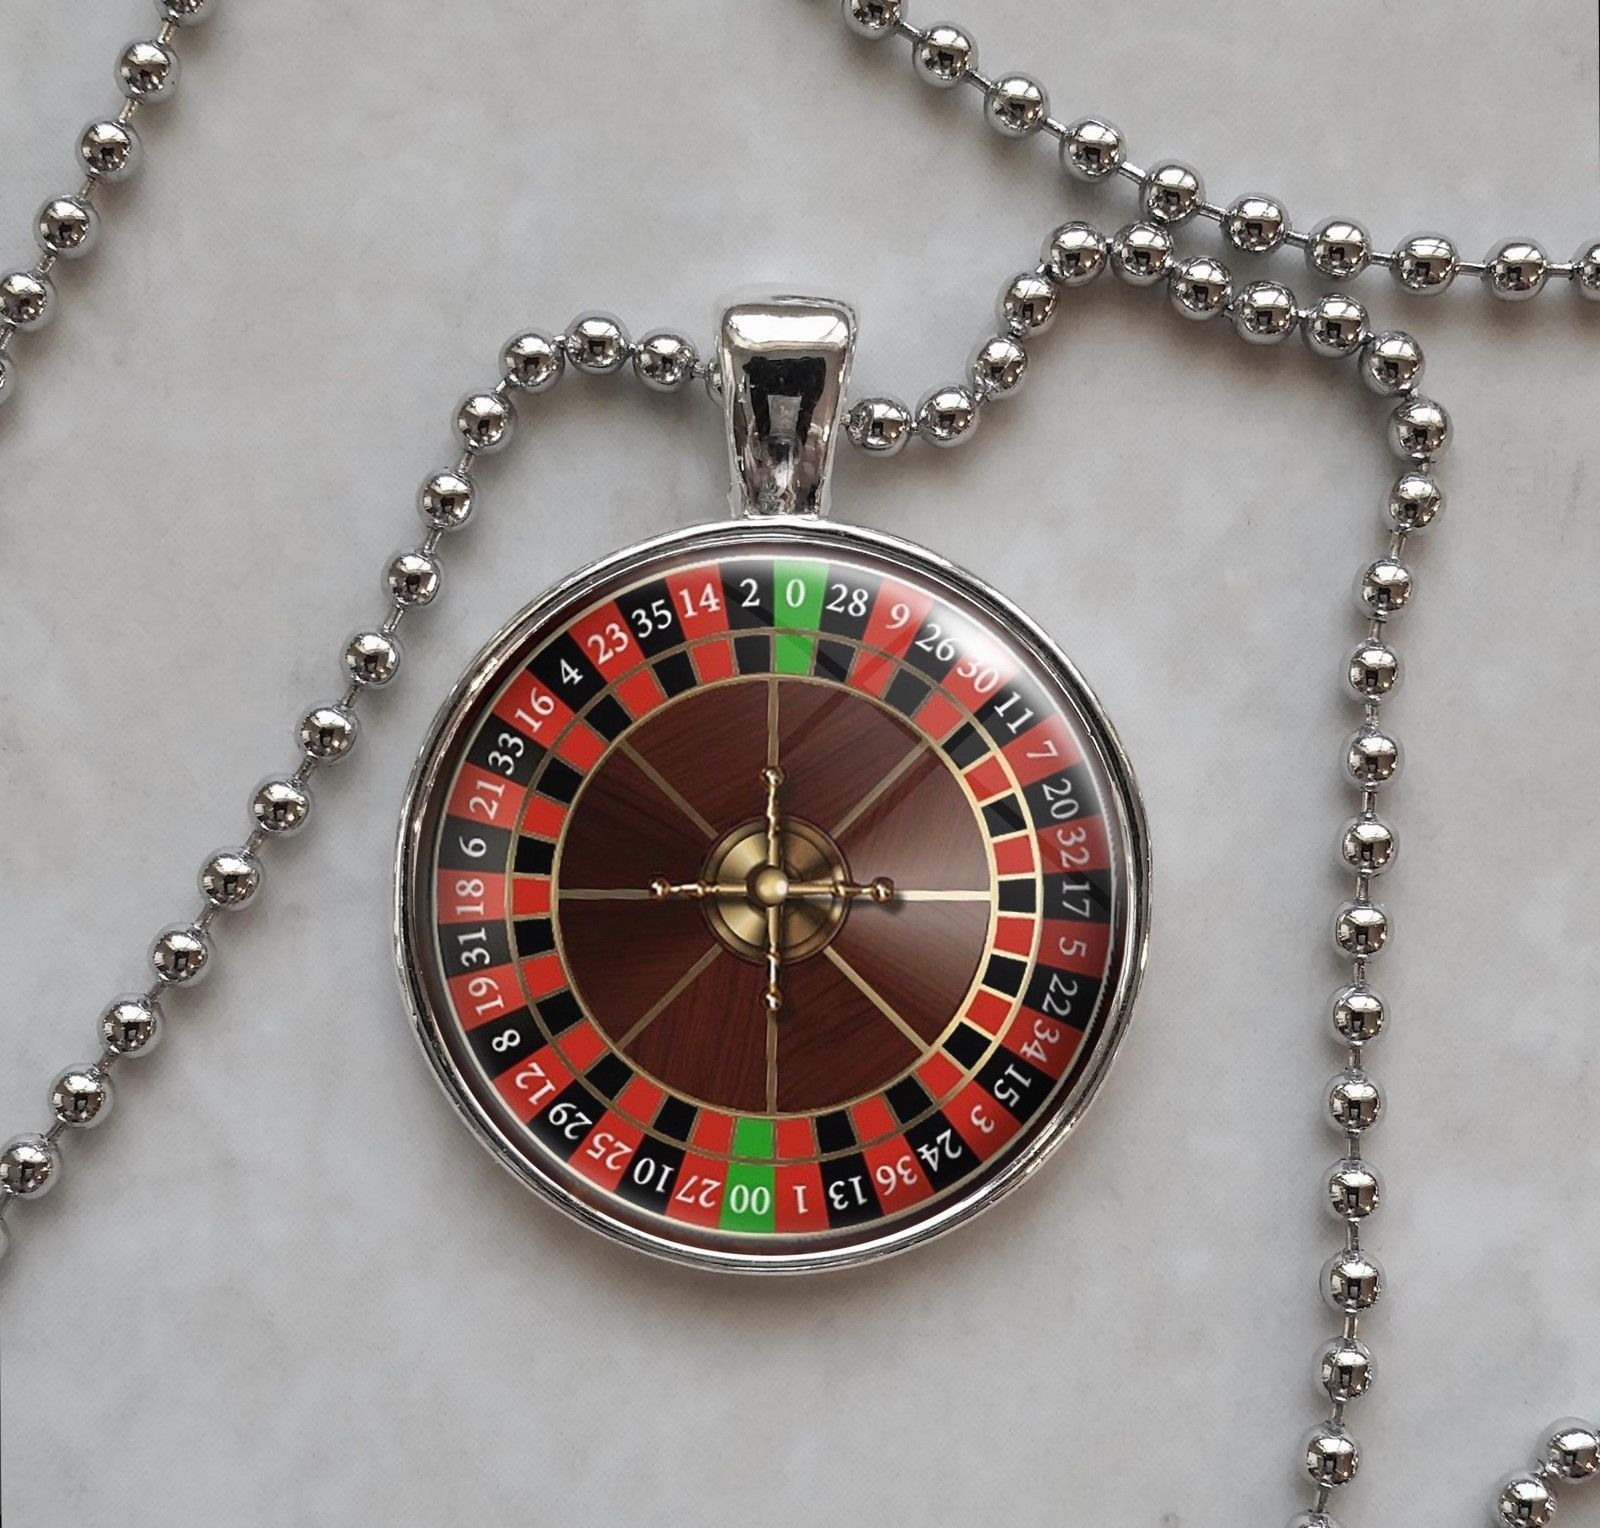 Primary image for Roulette Wheel Game Gambling Betting Vice Pendant Necklace